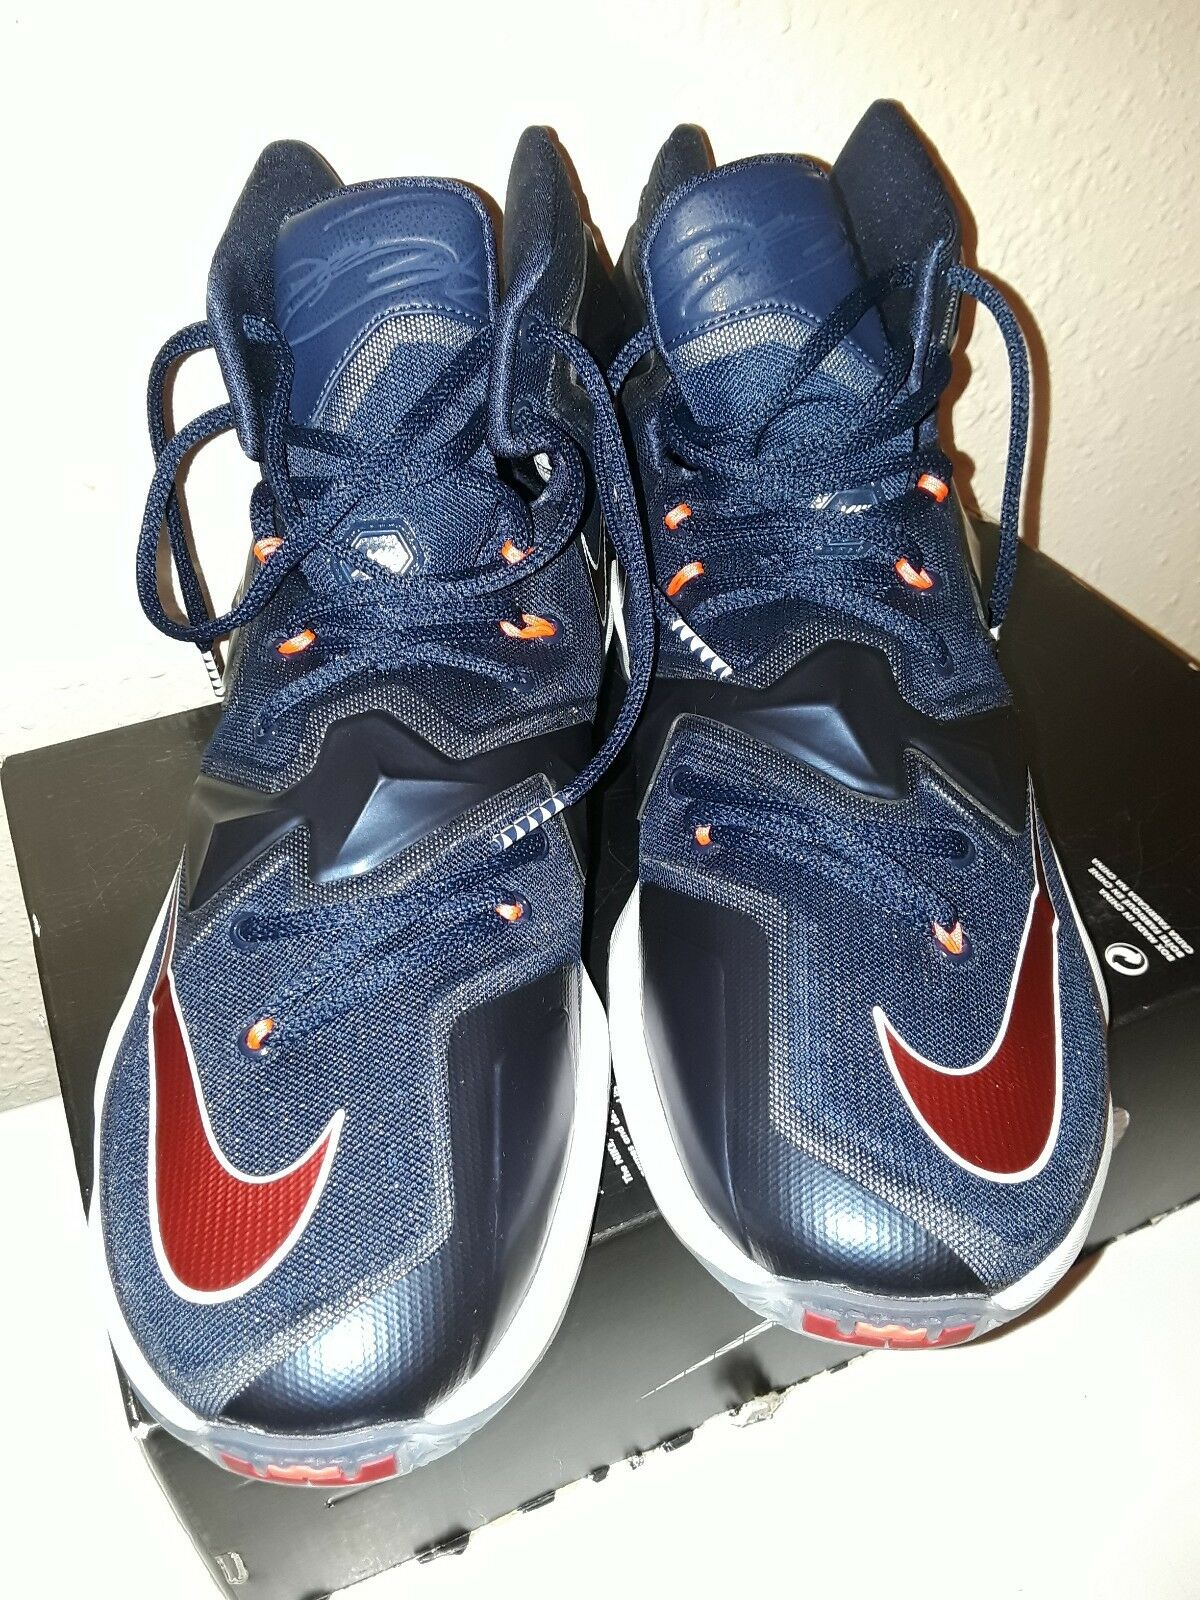 Nike Lebrons Xlll size 11.5 basketball shoes